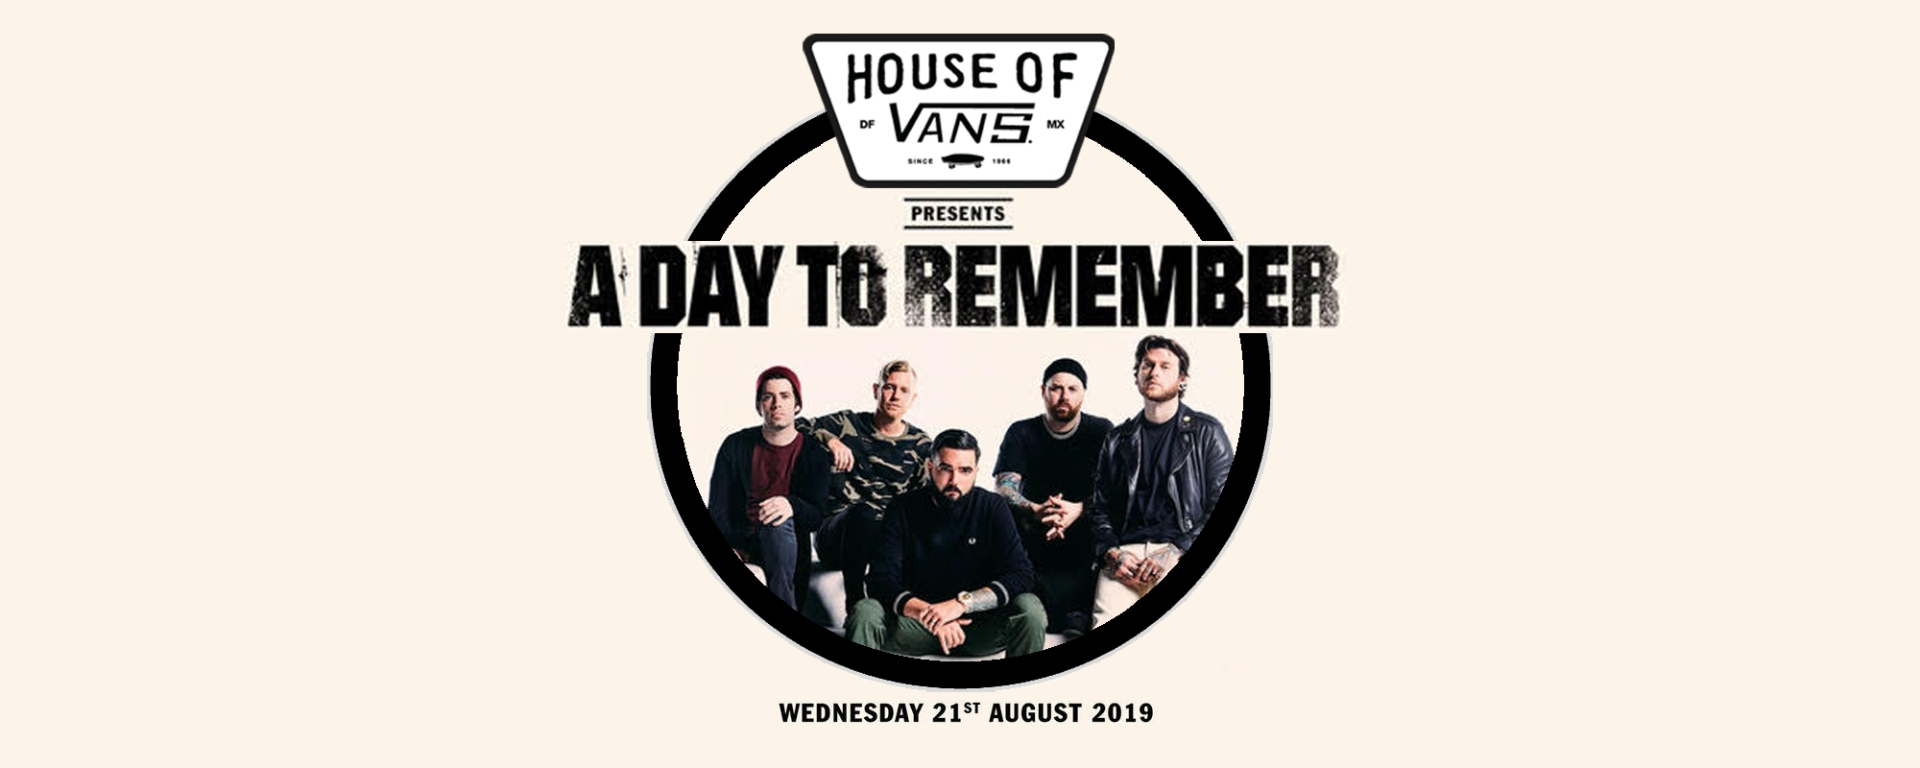 A Day To Remember ADTR at House of Vans London 21 August 2019